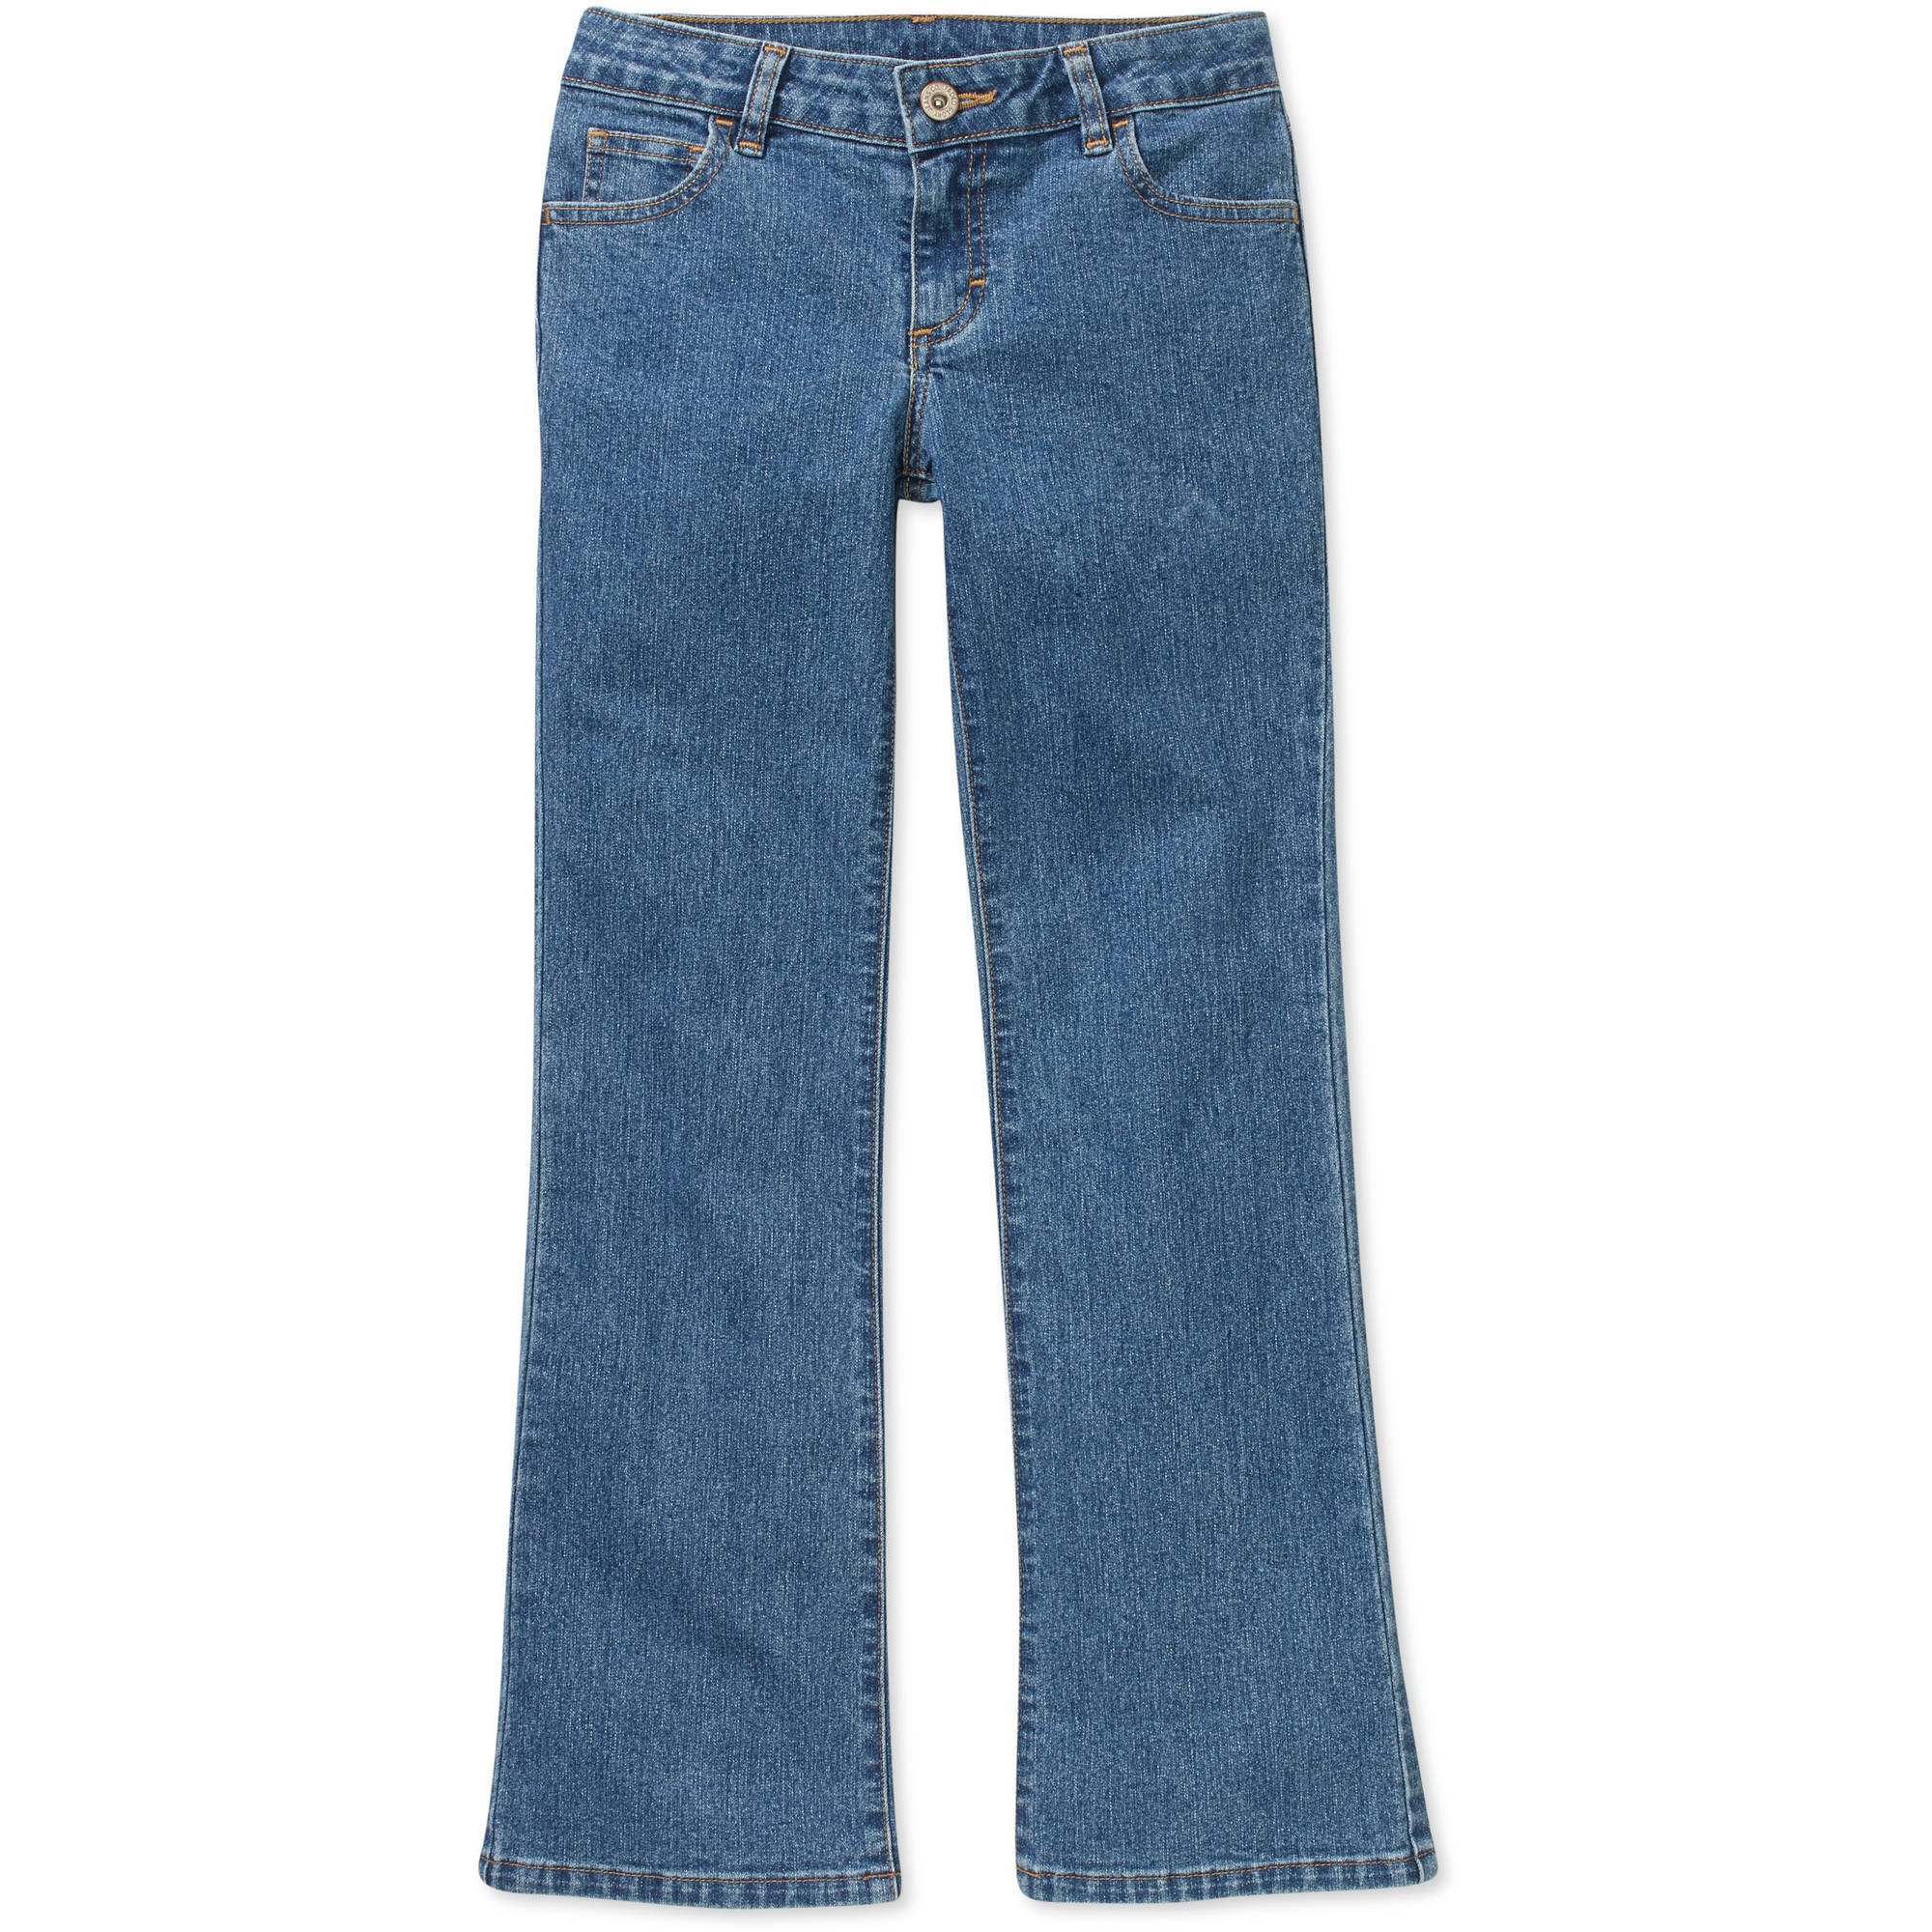 Faded Glory Girls&39 Bootcut Jeans - Walmart.com